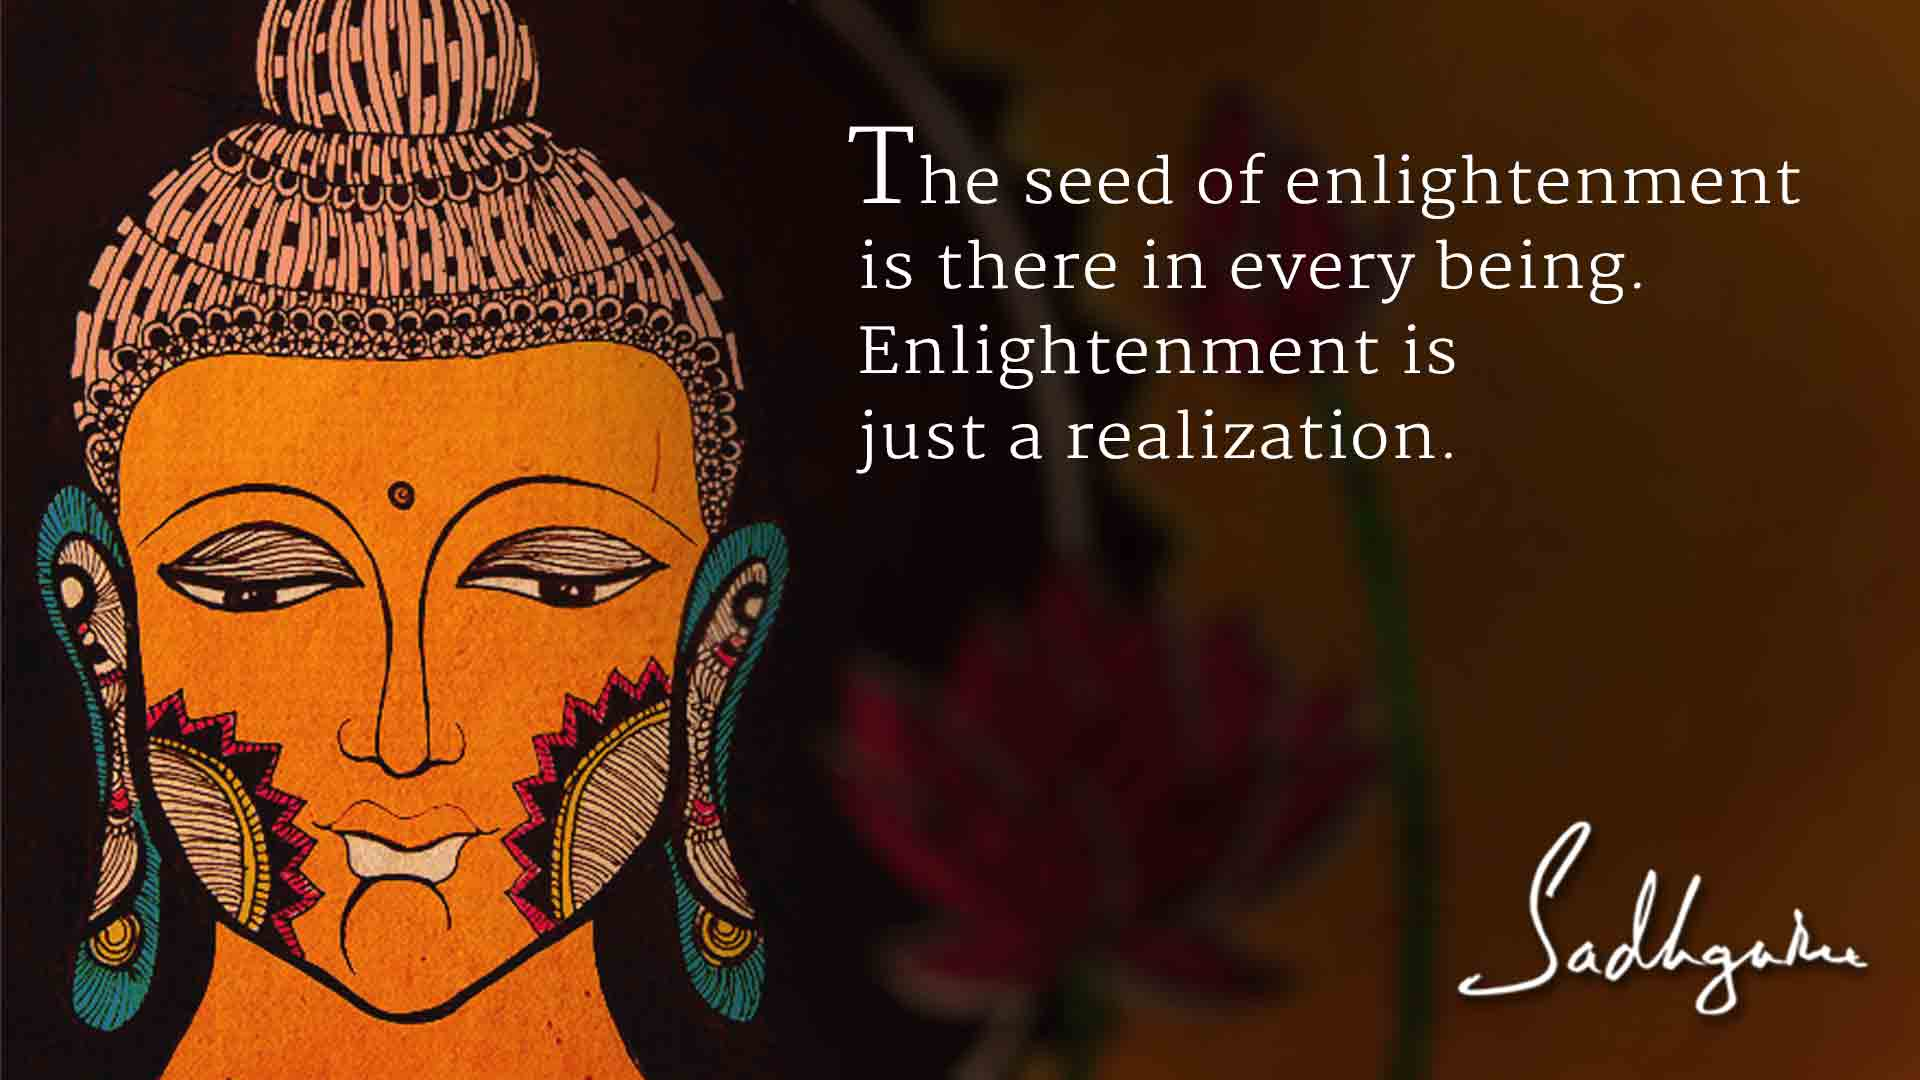 Gautama Buddha Quotes 5 Quotes About Buddha From Sadhguru  The Isha Blog